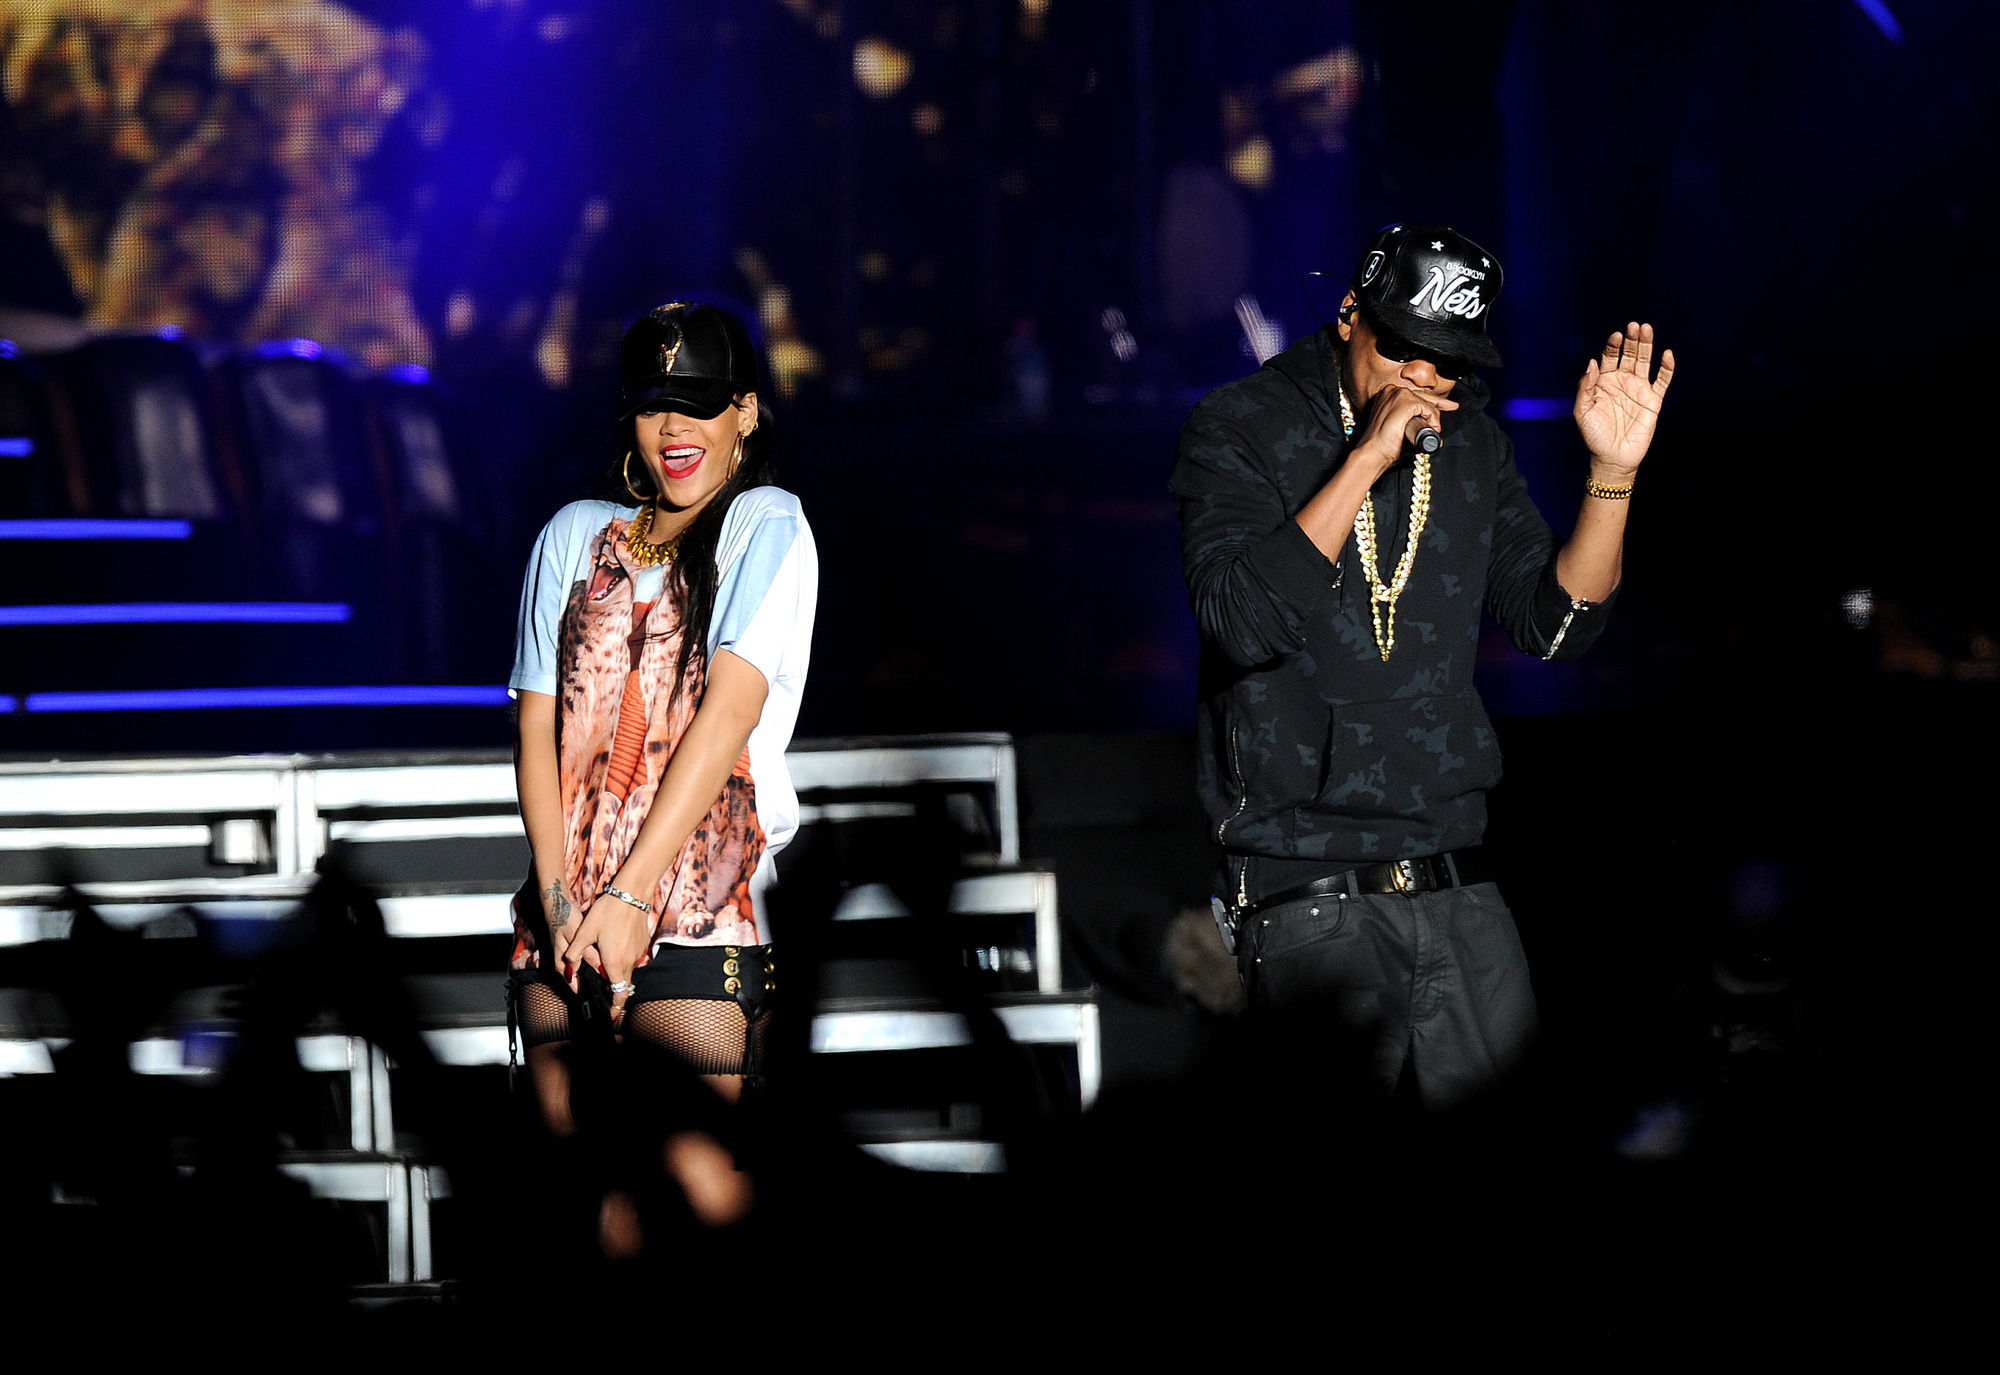 Rihanna & Jay Z at the Hackney Weekend